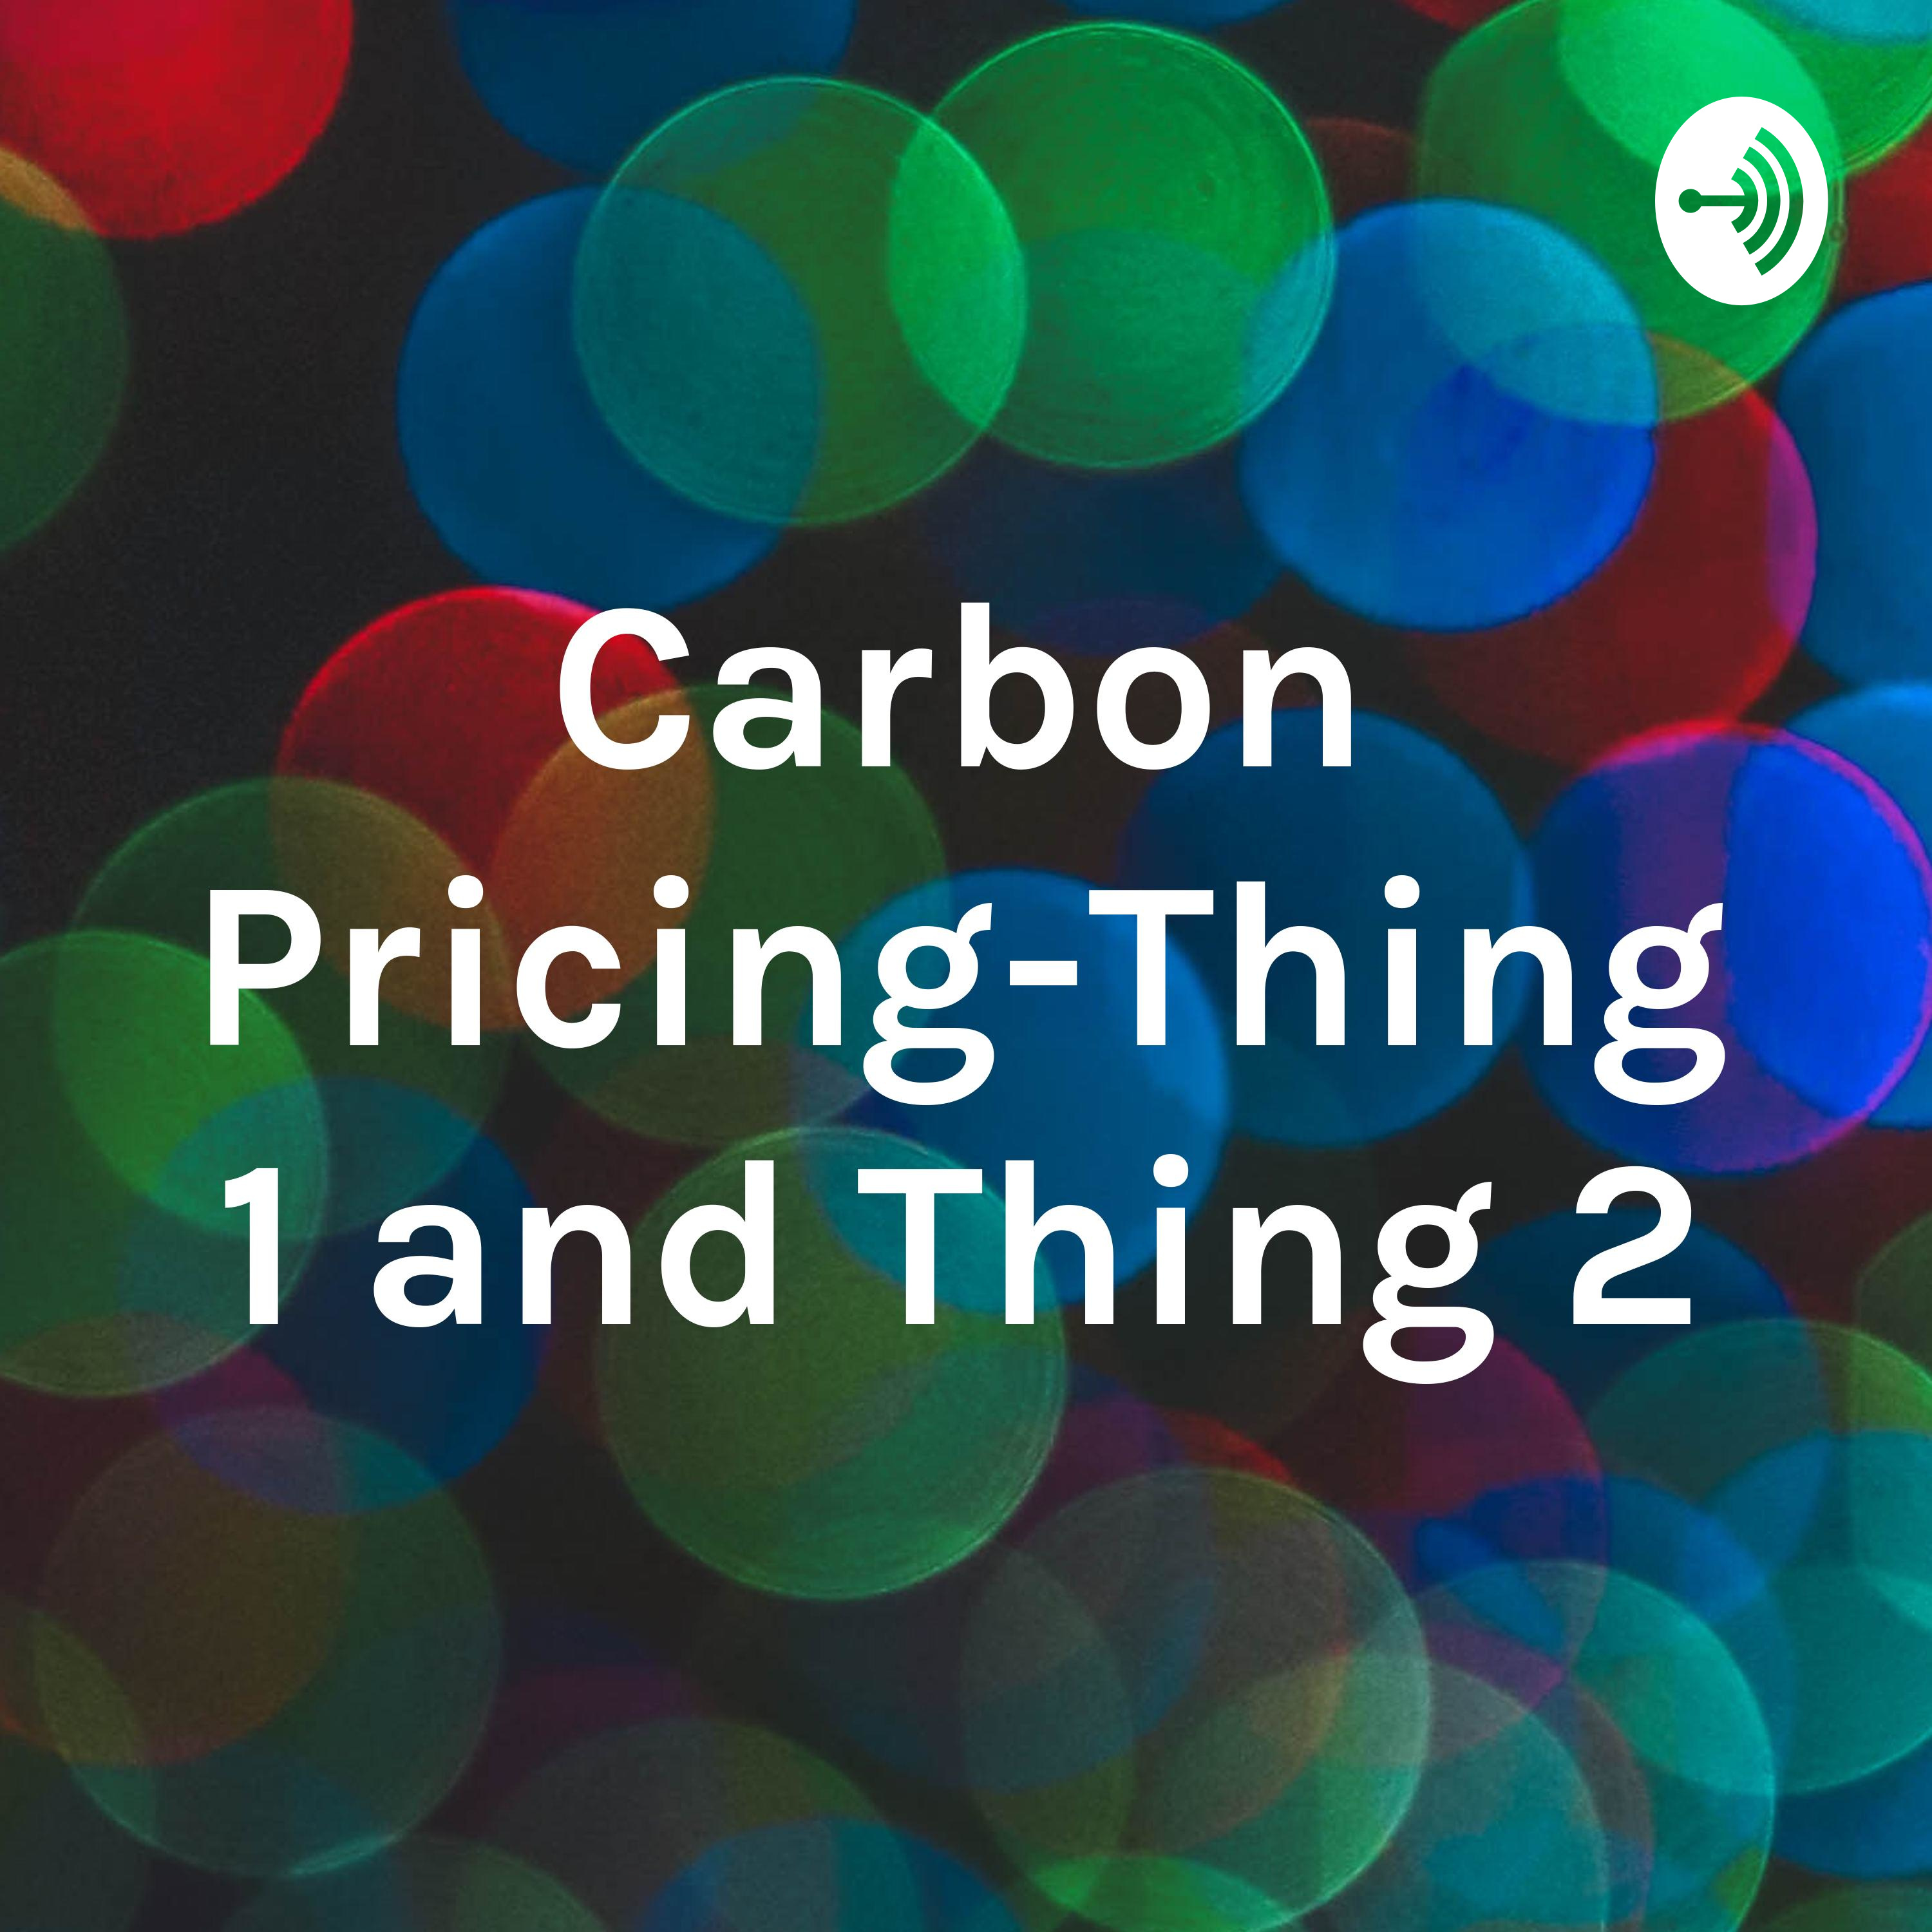 Carbon Pricing-6th grade science Thing 1 And Thing 2